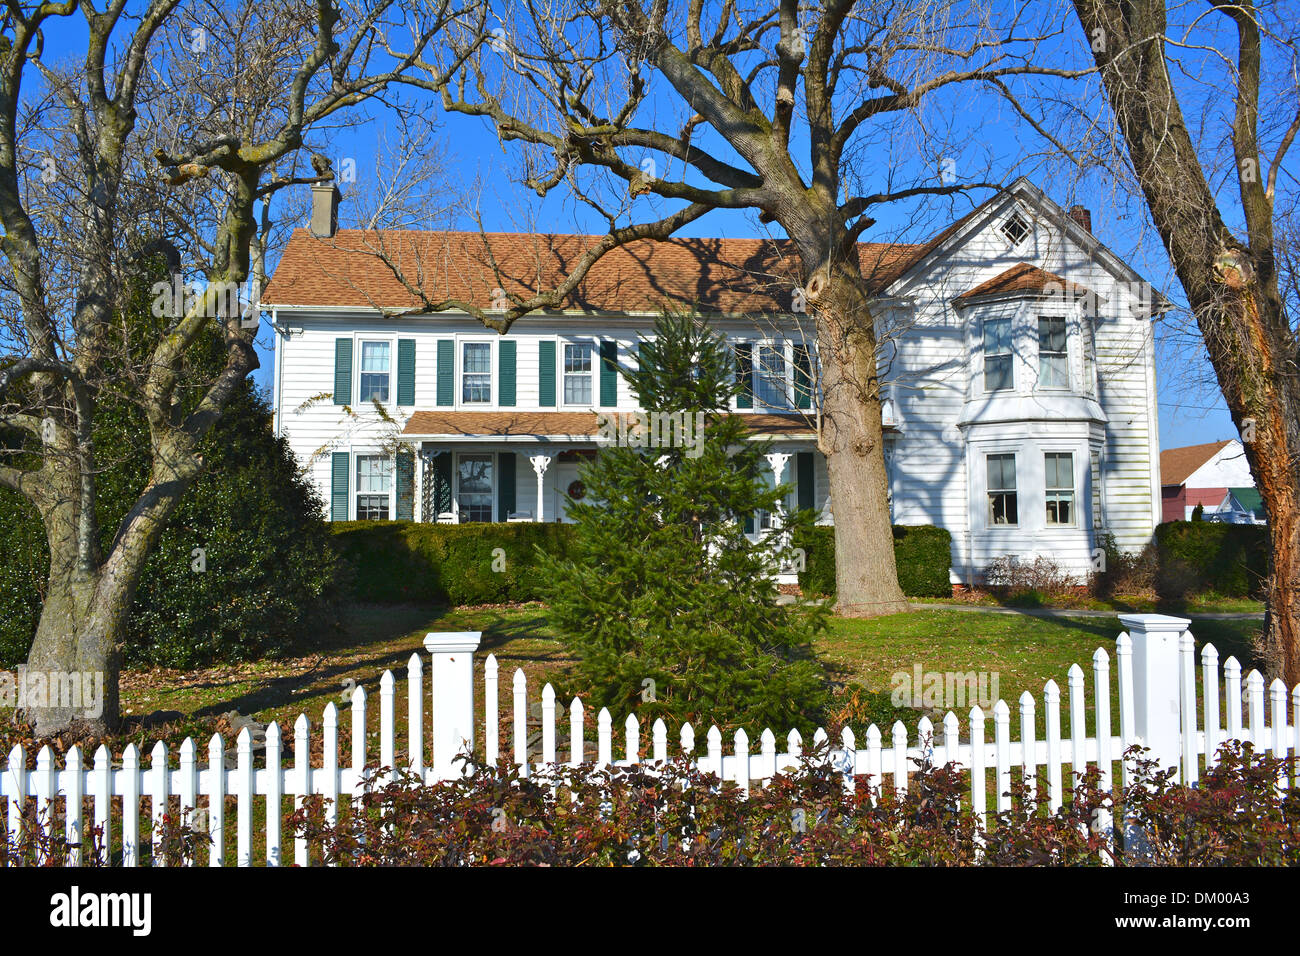 David Robbins Homestead, listed on the NRHP on January 2, 2013. Located at 26285 Broadkill Rd., near Milton, Sussex County, Dela - Stock Image